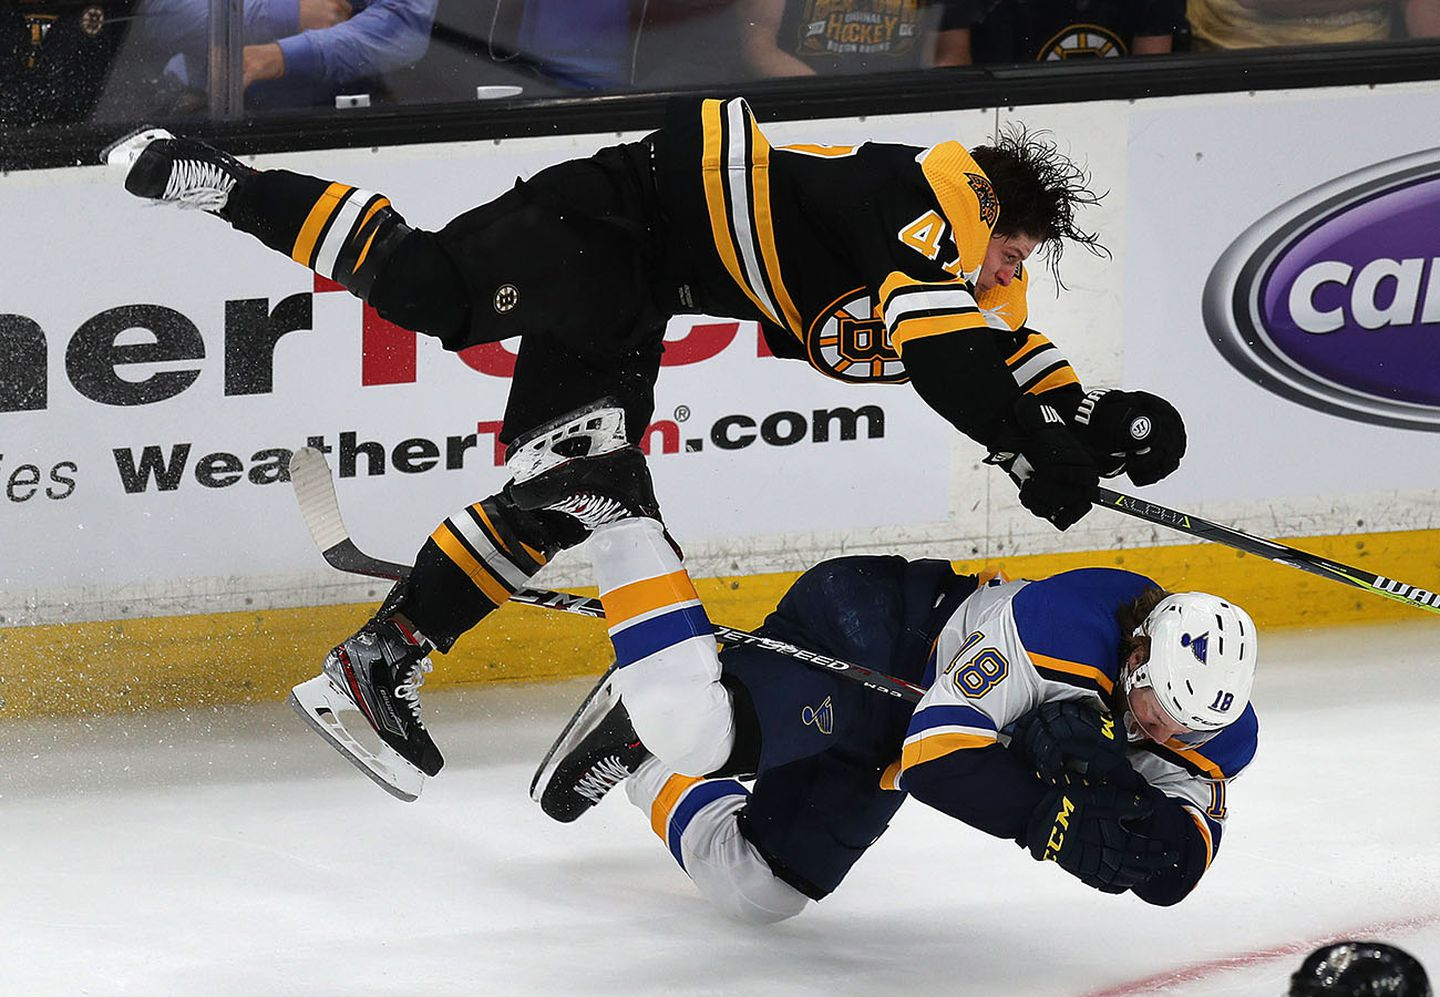 Should Torey Krug be subject to discipline for that hit? - The ...